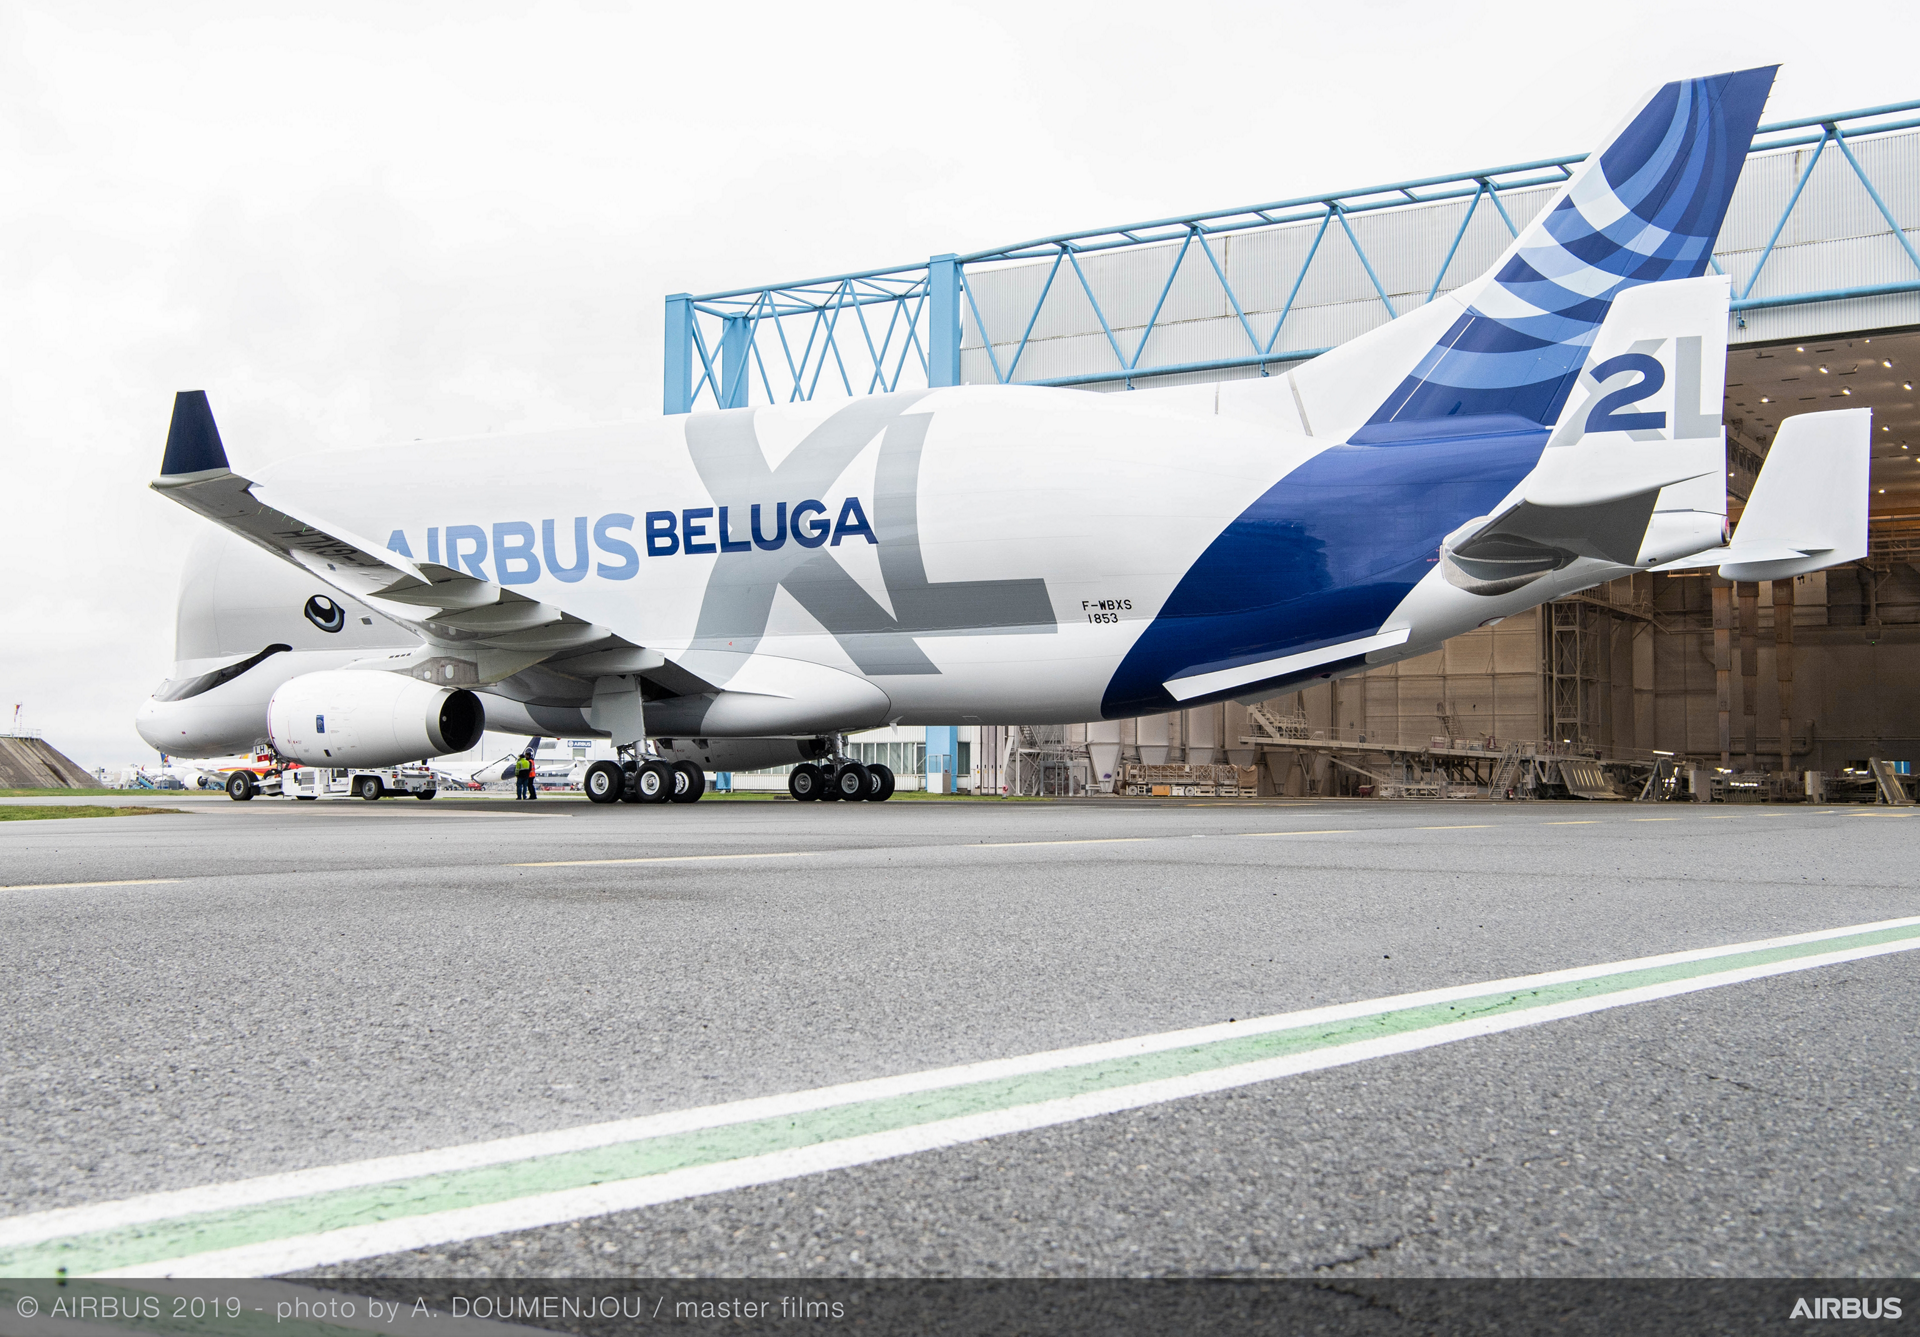 The blue-and-white livery for Airbus' second BelugaXL cargo airlifter was applied during activity at the company's Toulouse, France paint shop